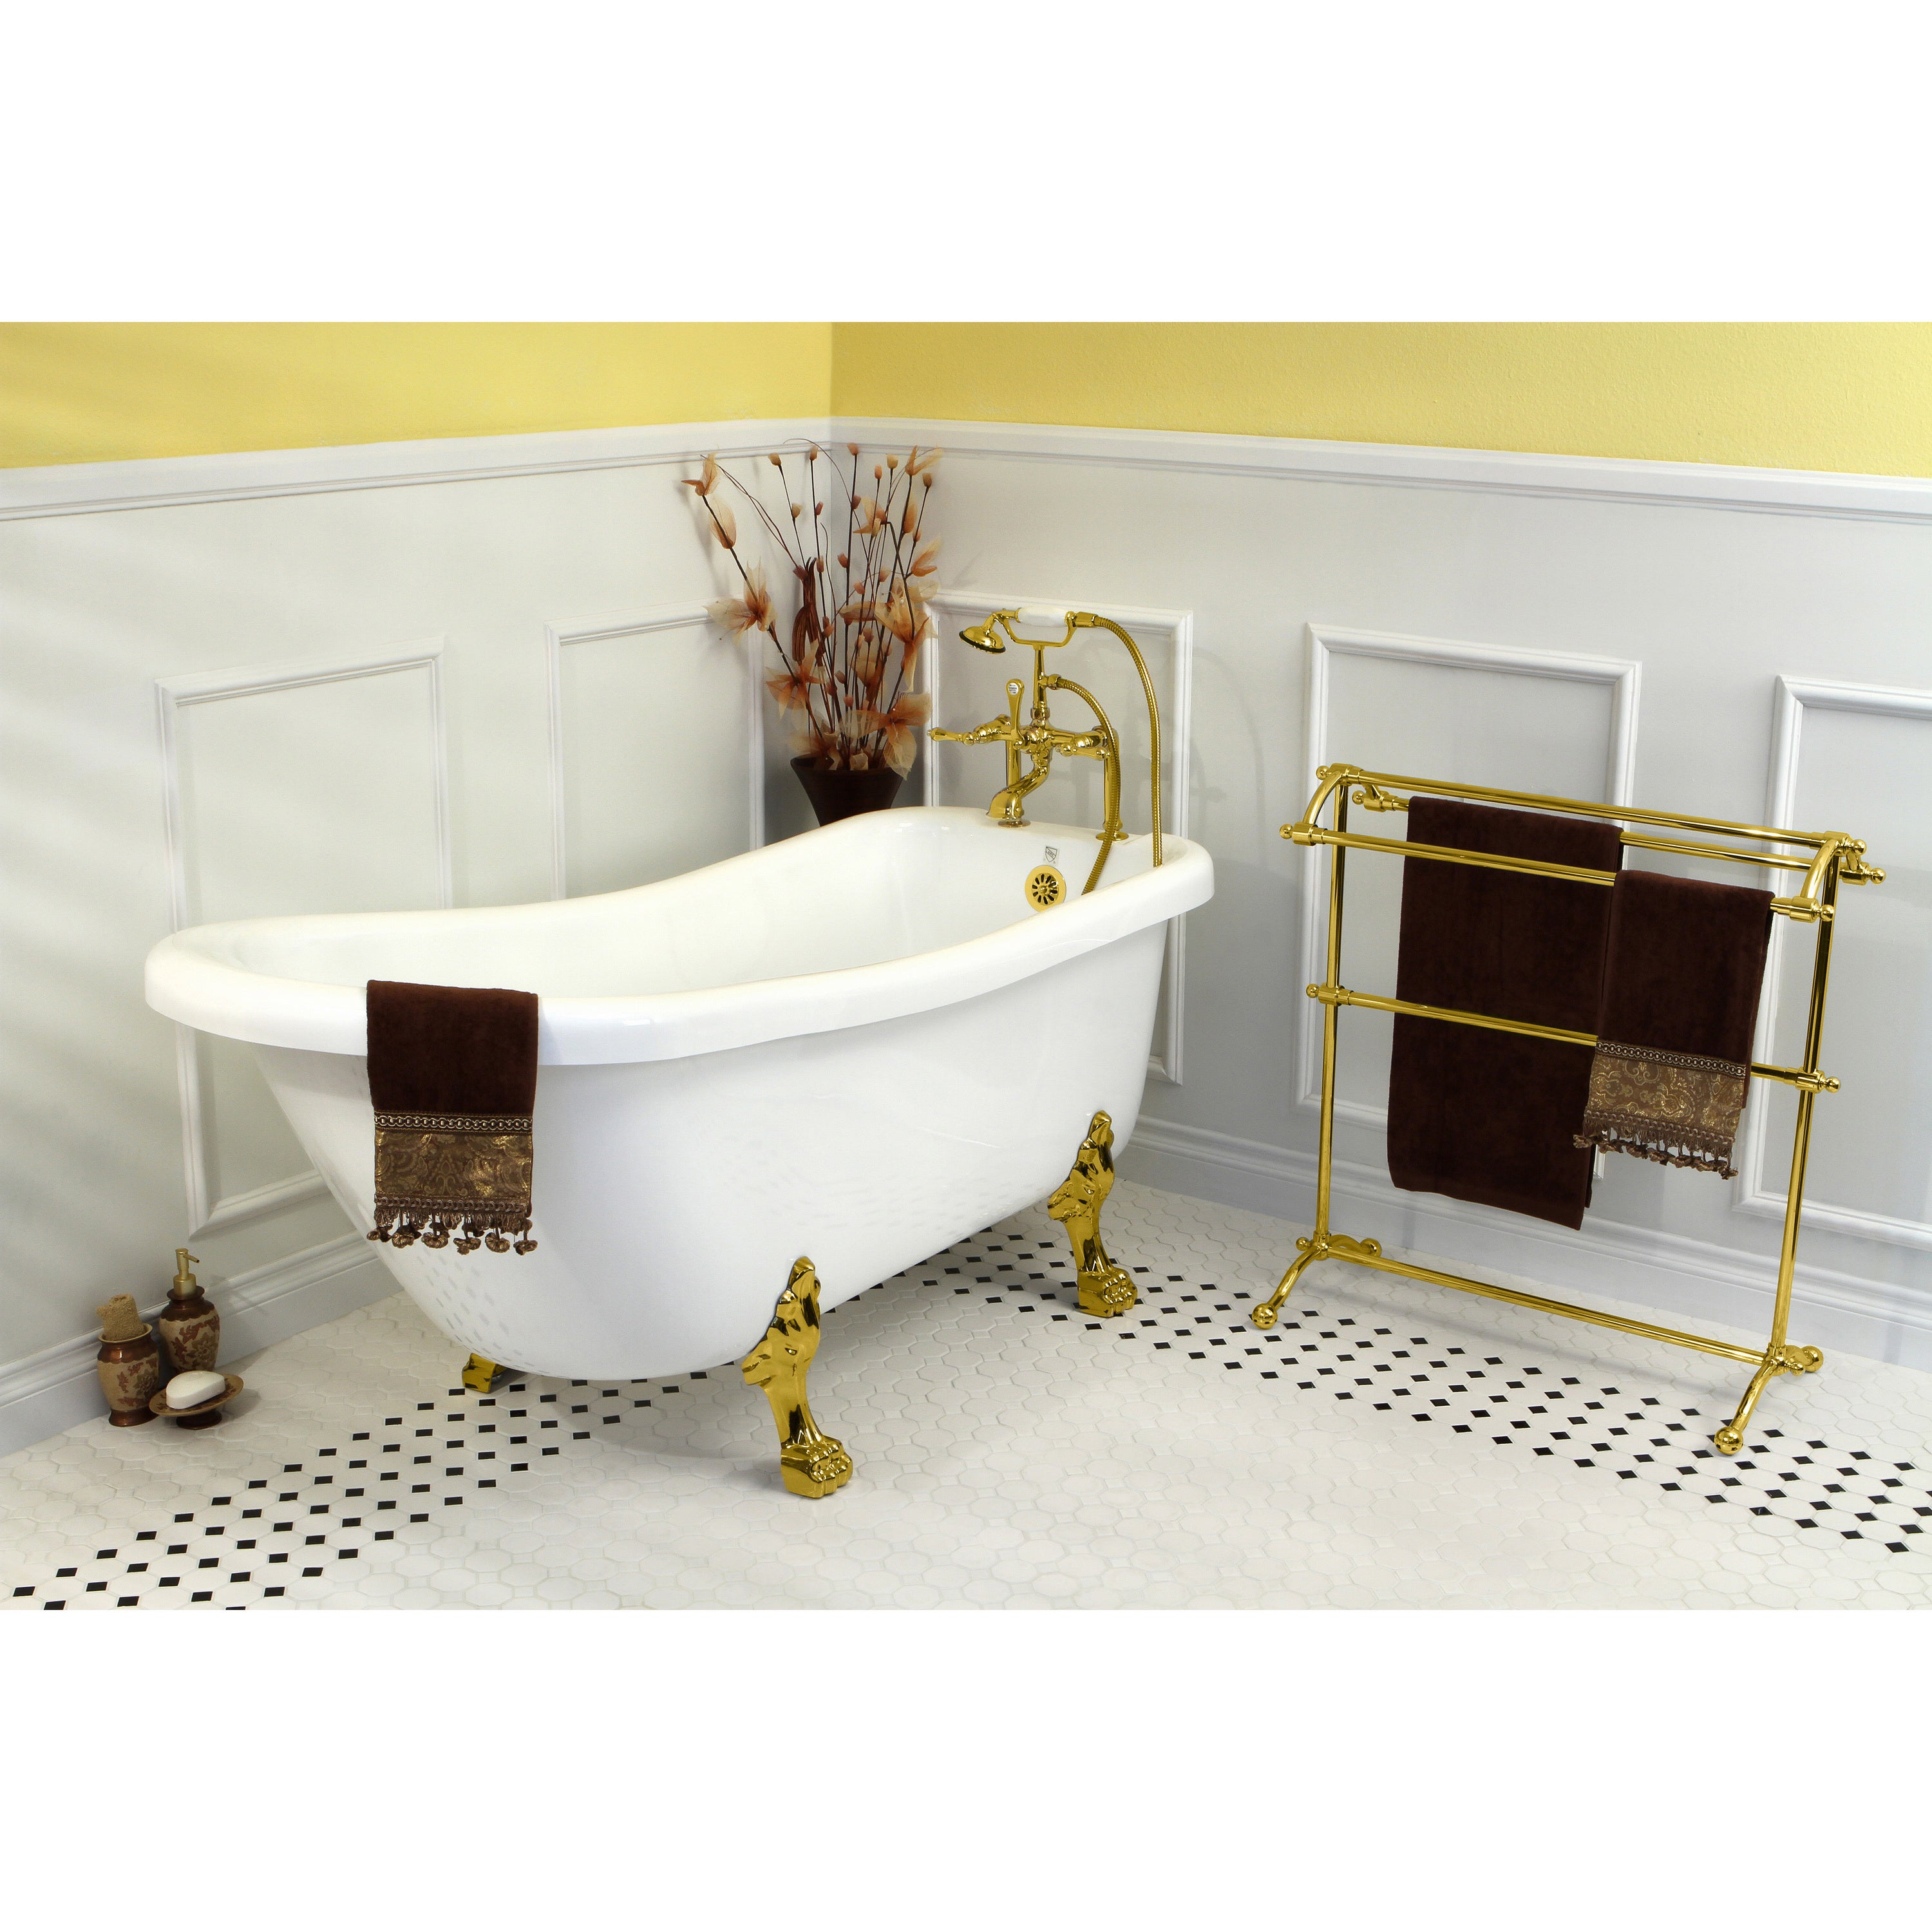 Shop Vintage Collection 67-inch White Acrylic Clawfoot Slipper Tub ...